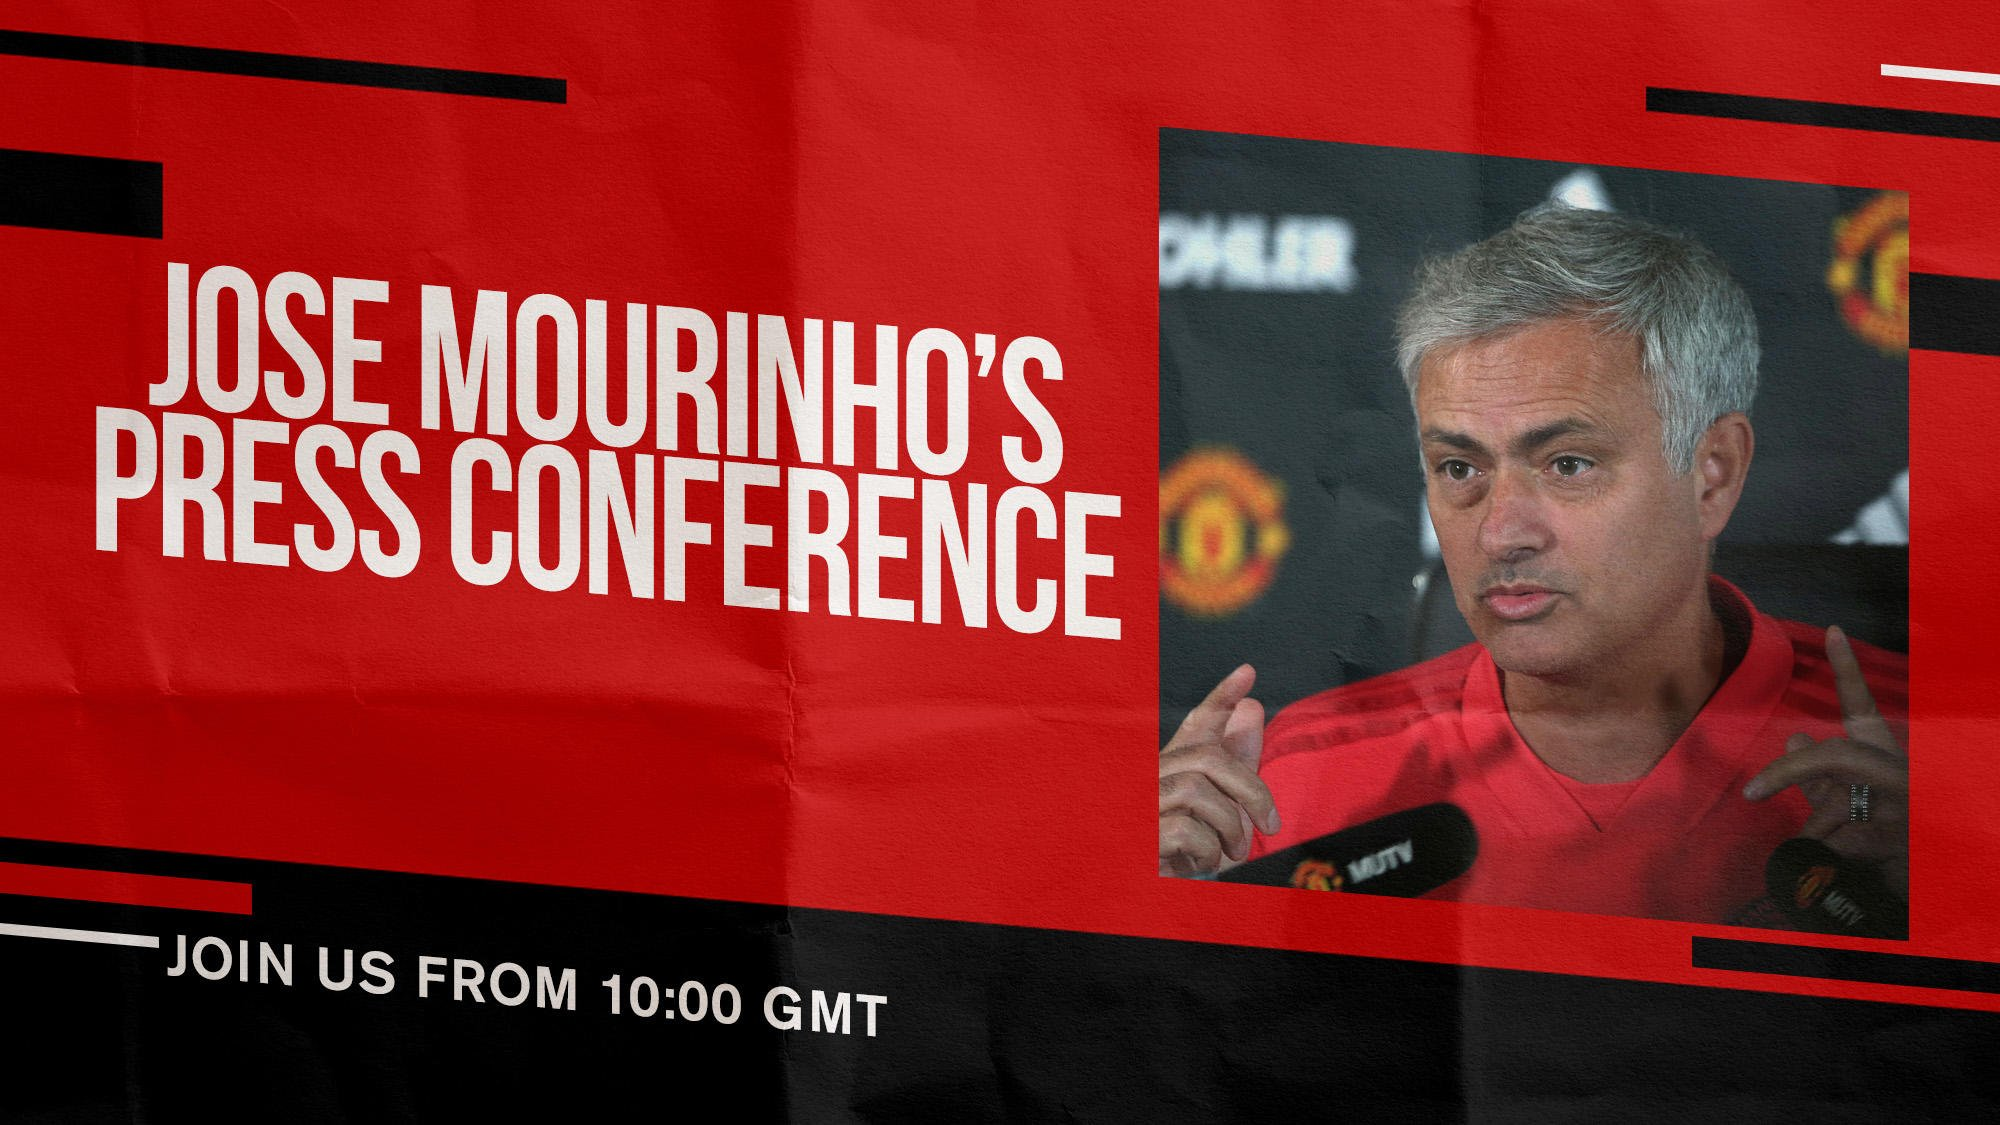 The boss will address the media ahead of Sunday's Manchester derby later this morning. #MUFC https://t.co/XIl4dPKWK2